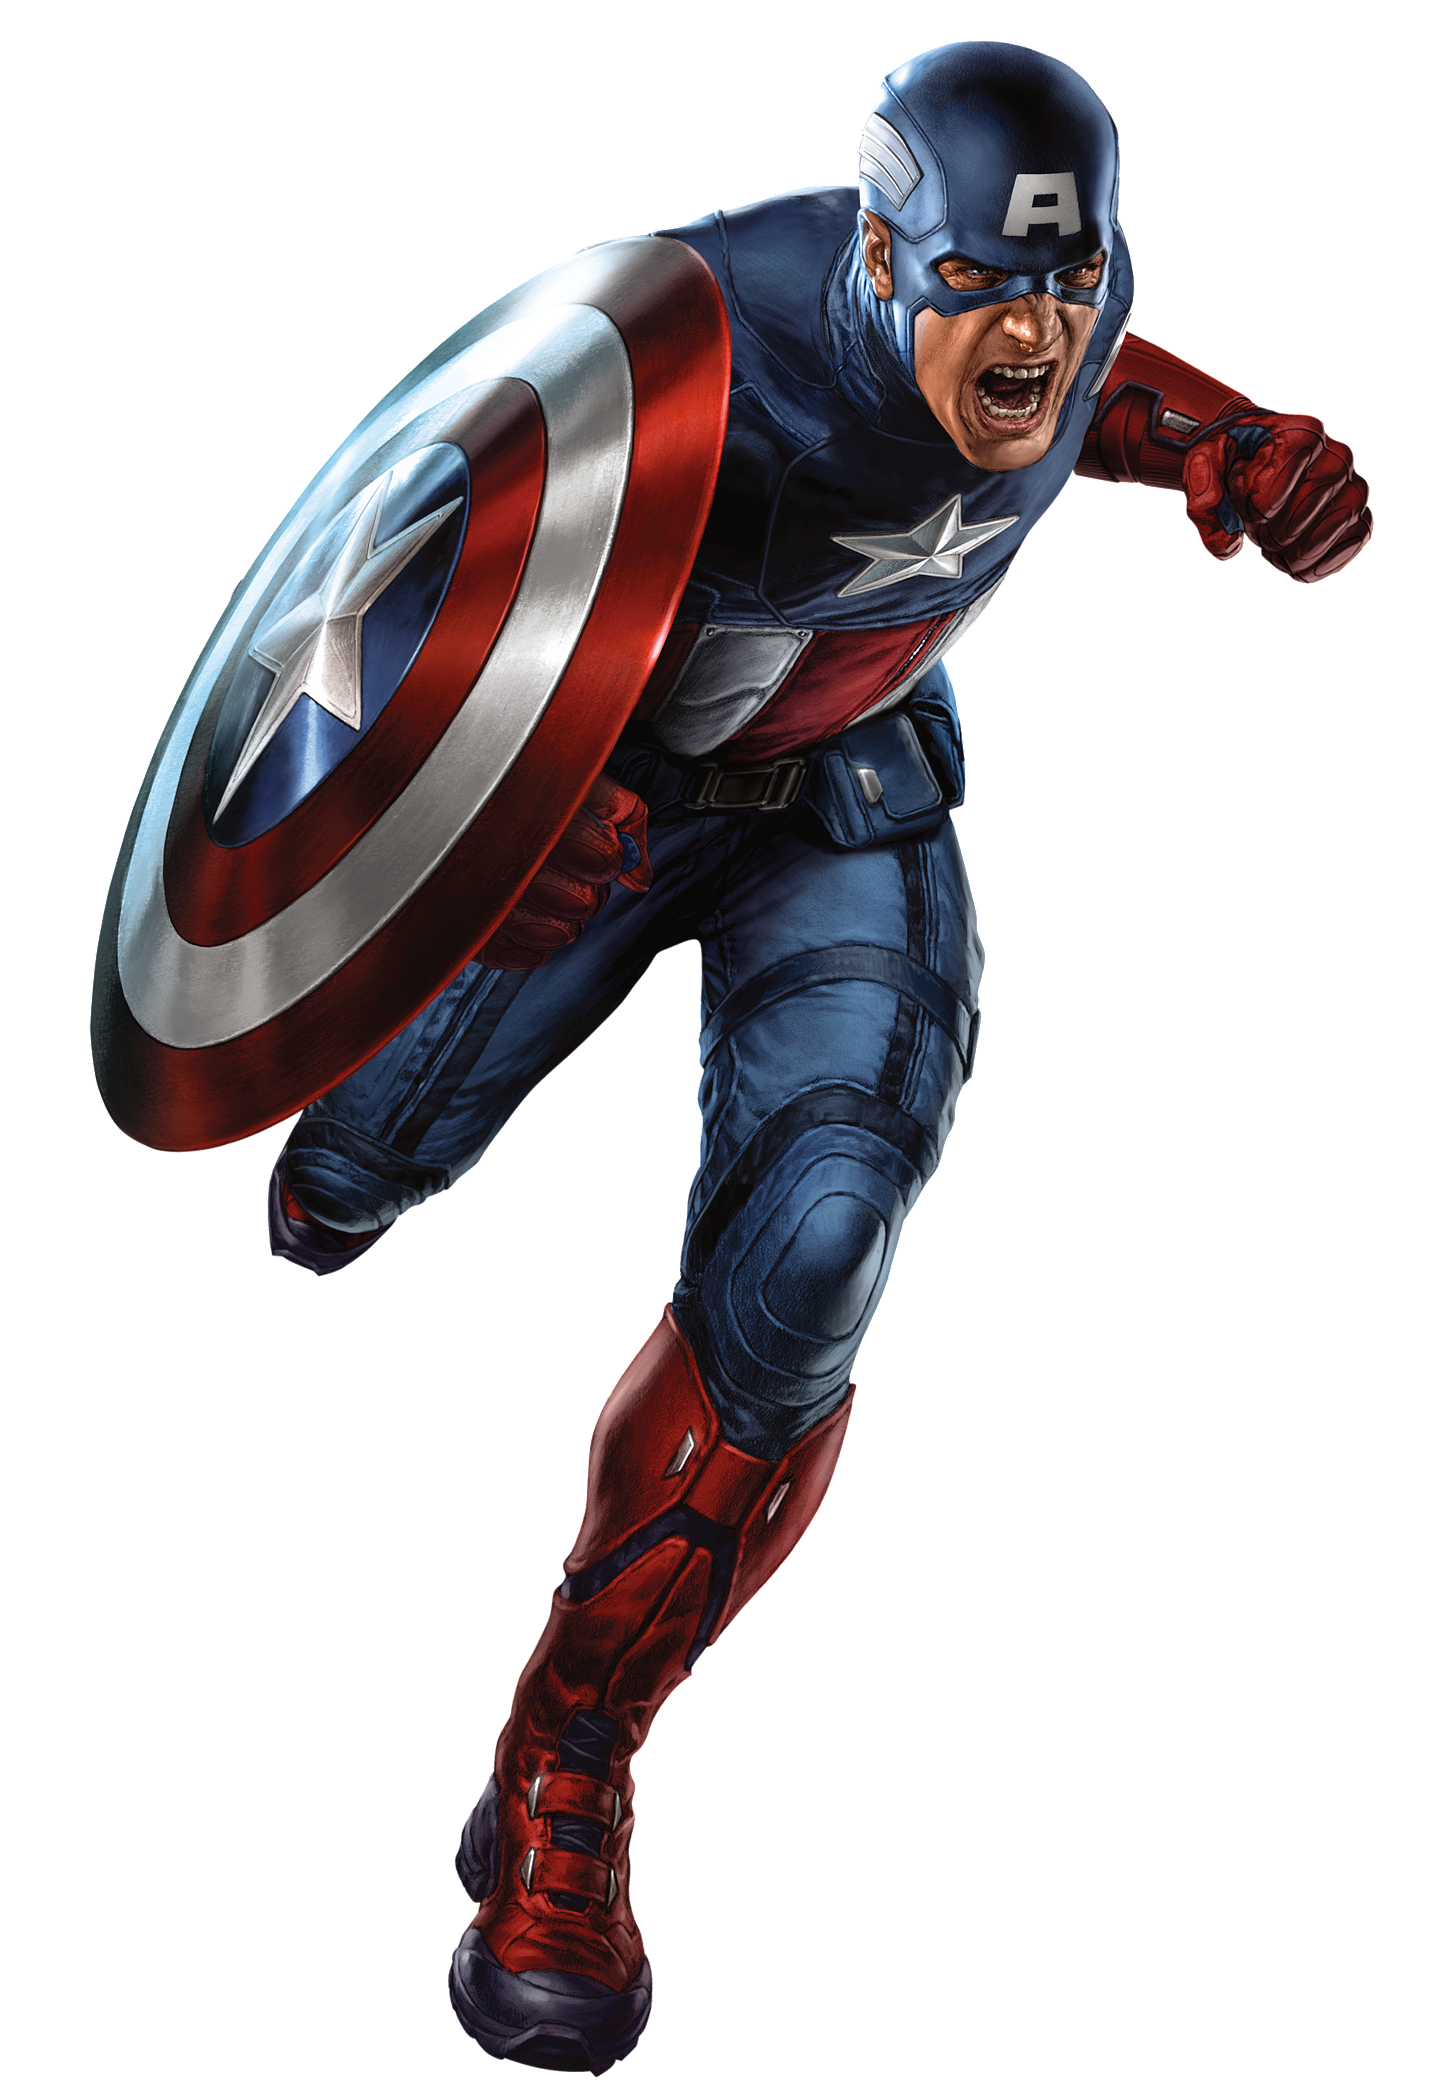 CaptainAmerica2-Avengers.png - Avengers PNG